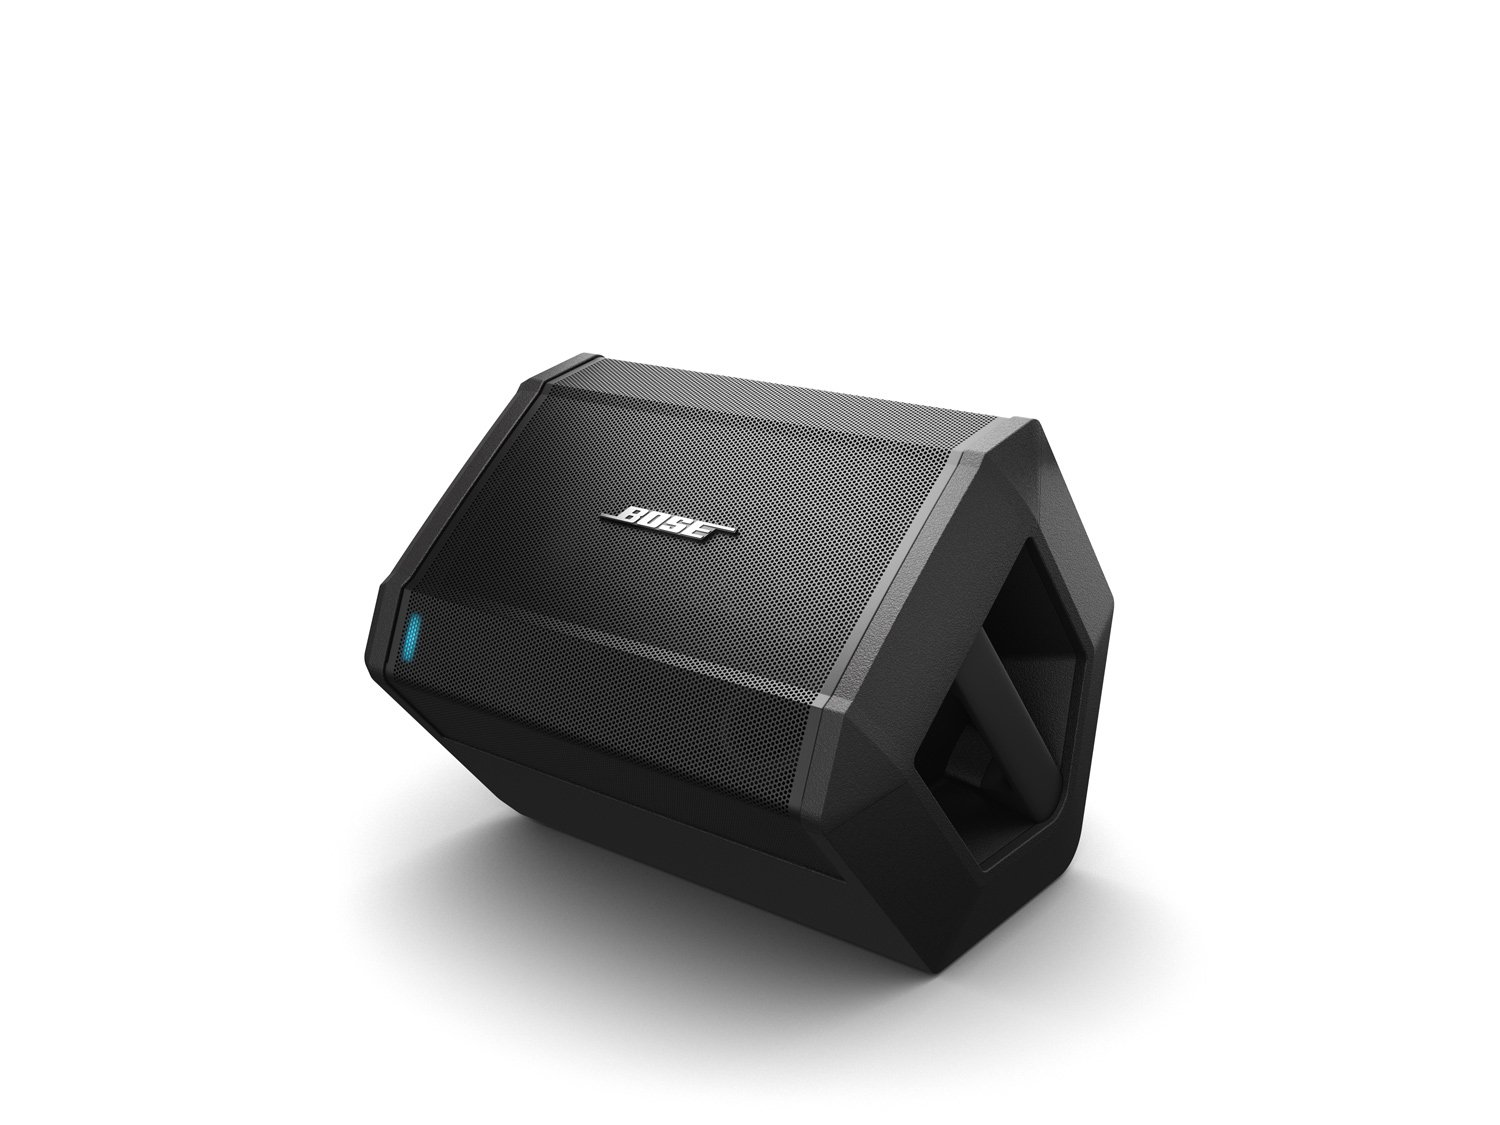 Bose S1 Pro Bluetooth Speaker System w/ Battery, Black - 787930-1120 4 Big sound from a rugged speaker that goes where you do Wireless Bluetooth pairing and inputs for a microphone or musical instrument such as a keyboard or guitar Built-in sensors and multiple aiming positions for optimal sound in any nearly position